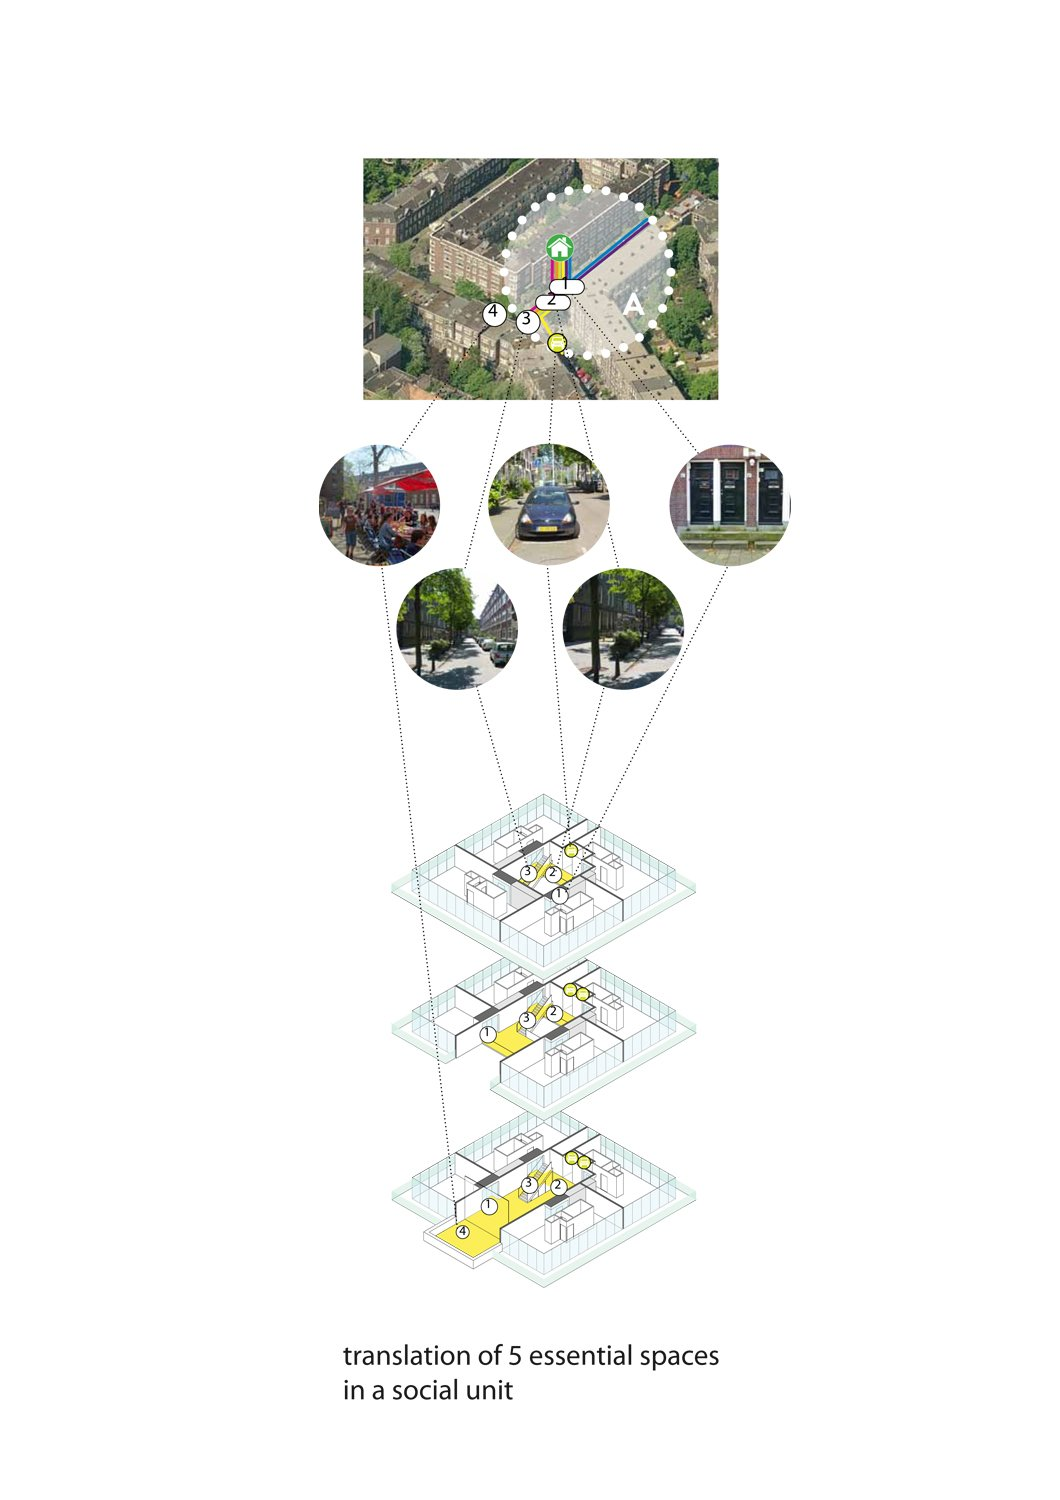 diagram: spaces in the neigborhood translated as spaces, with similar privacylevel, in the social unit of the tower